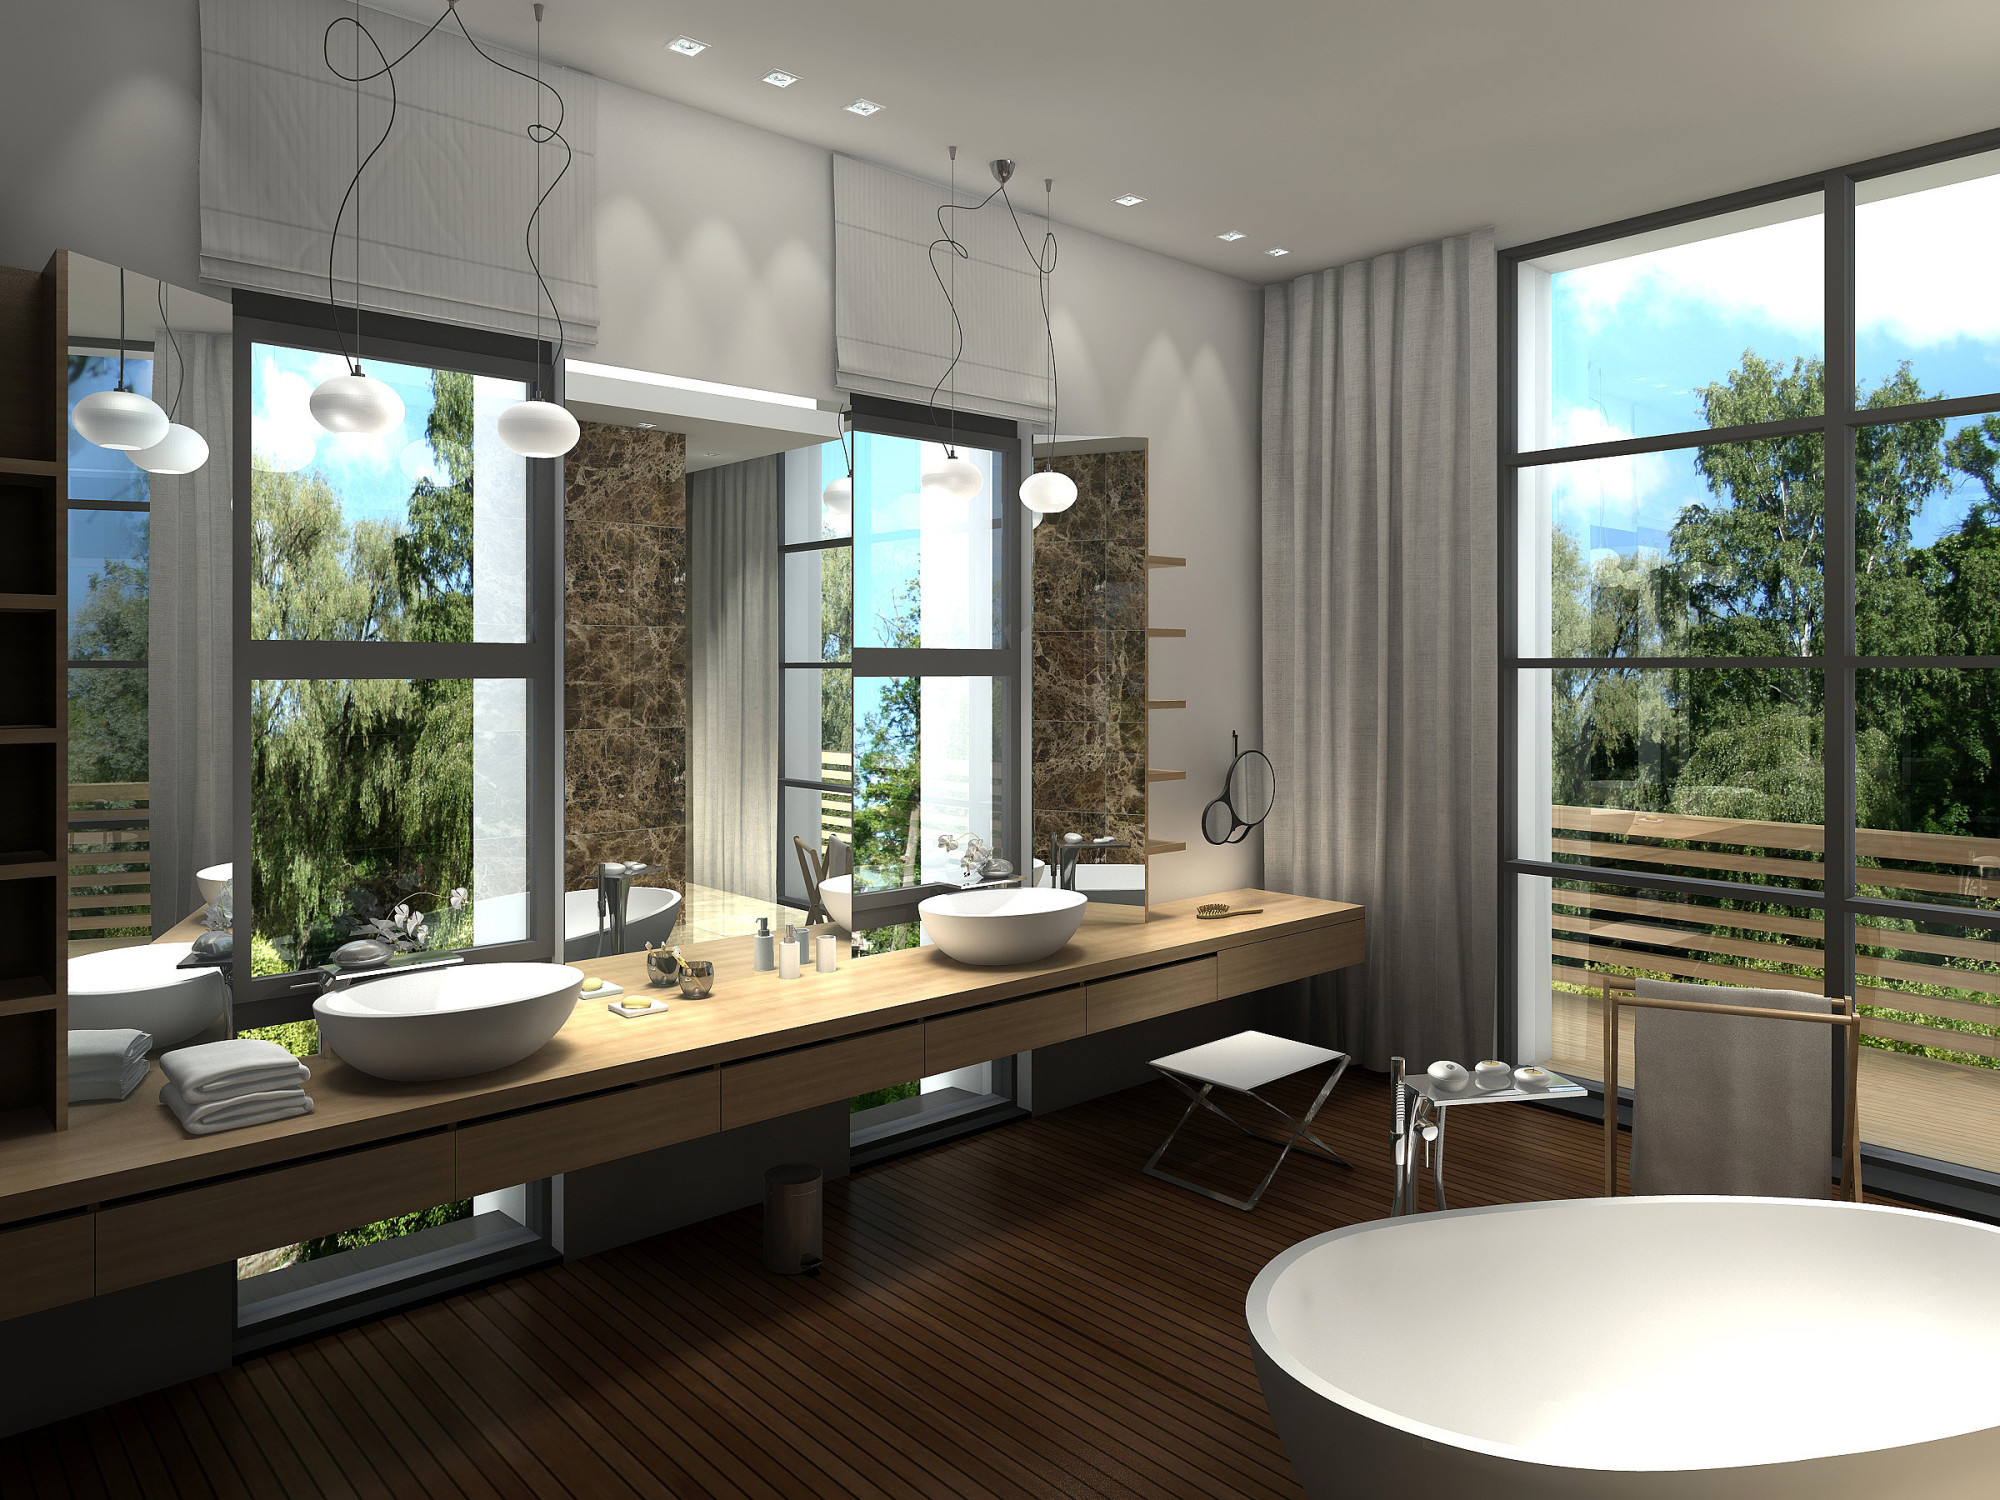 5 Great Renovation Ideas For a More Luxurious Bathroom